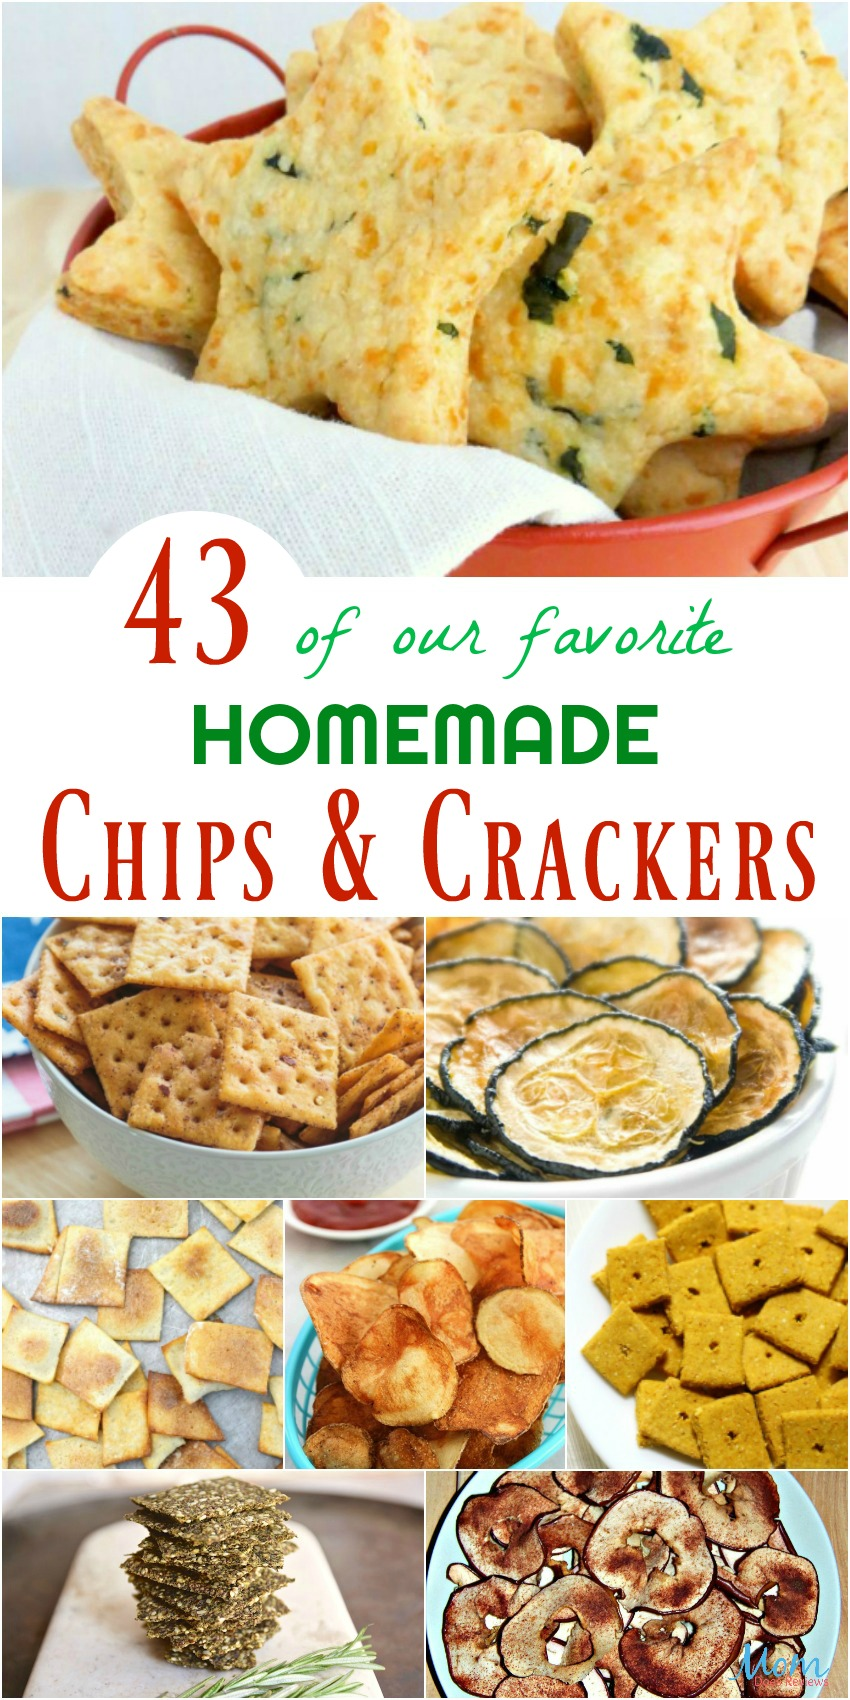 43 of our favorite Homemade Chips & Crackers #recipes #chips #crackers #veggiechips #foodie #food #yummy